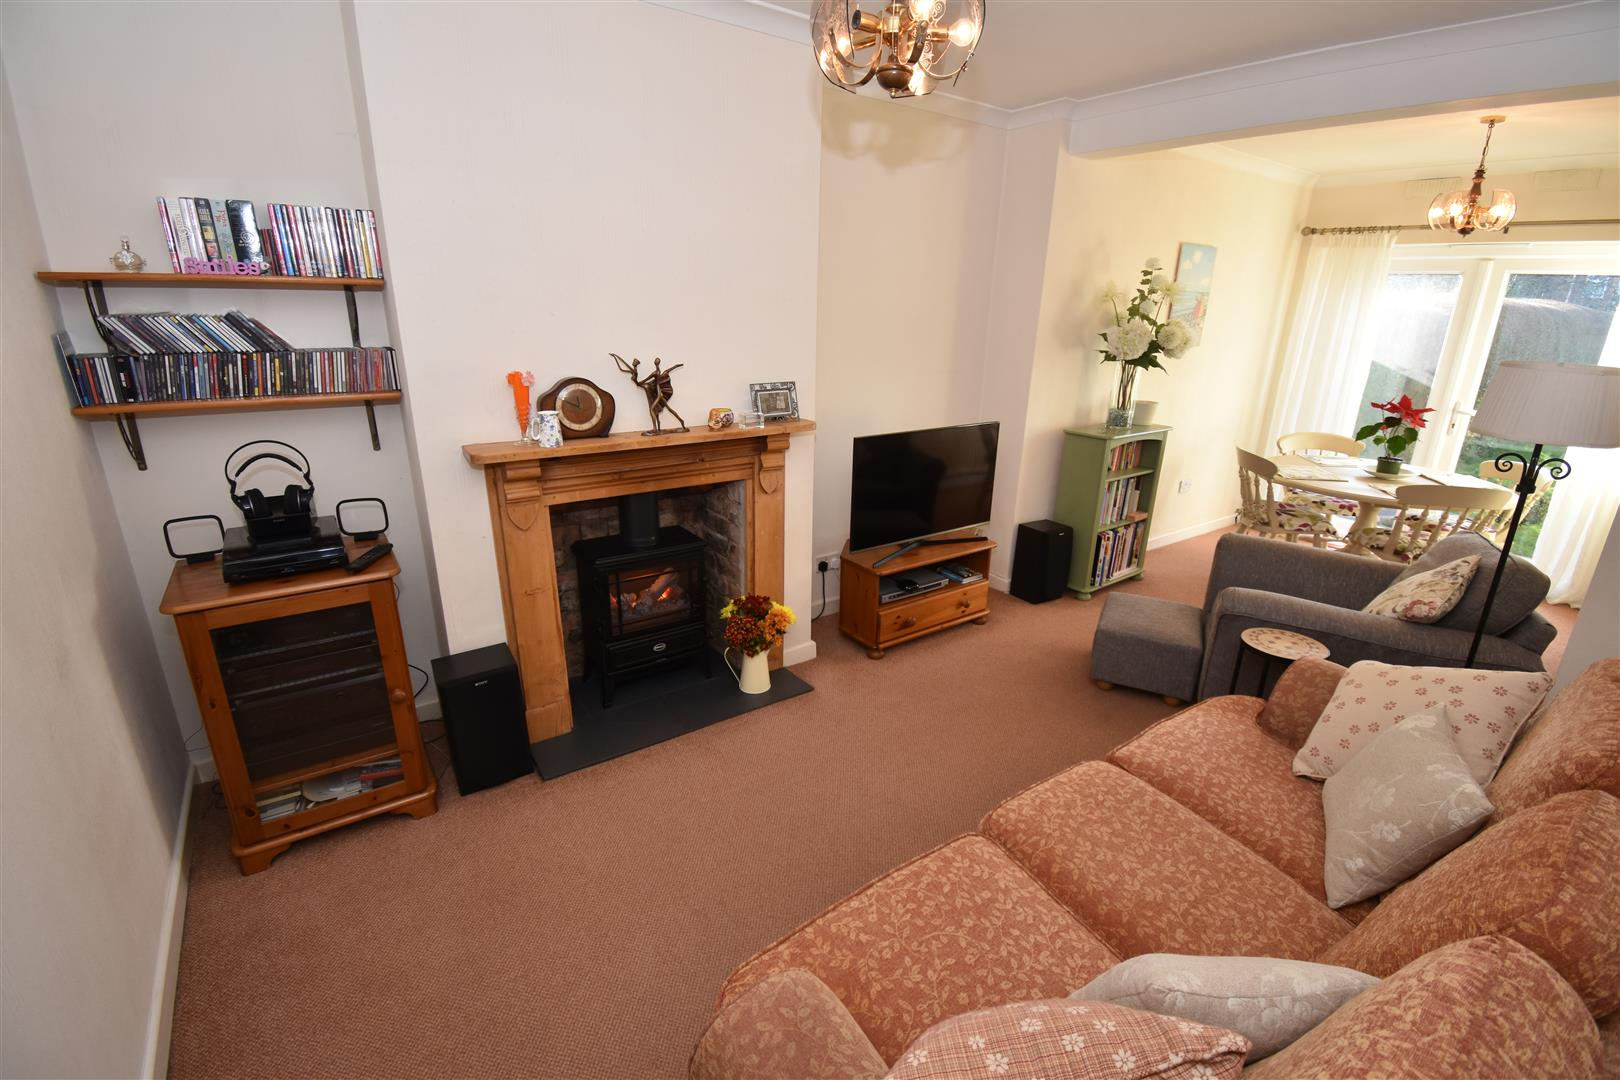 3 bed house for sale in Bromford Road, Hodge Hill, Birmingham B36 8HR 3